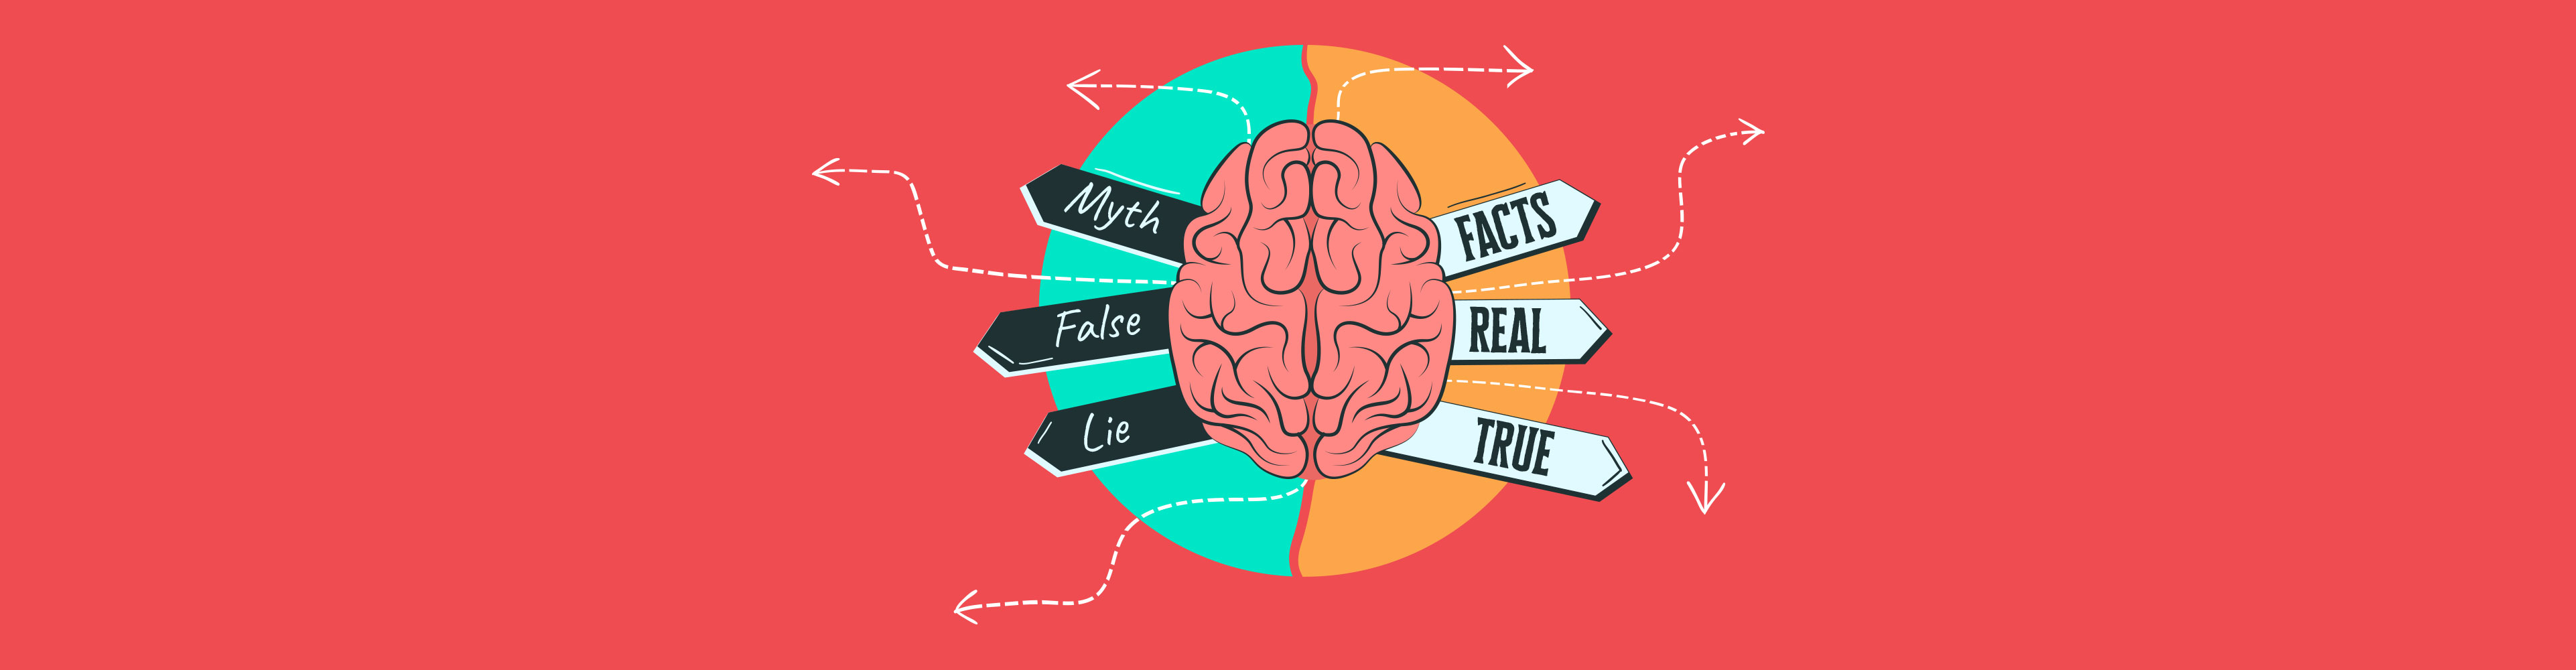 common myths visual brains debunked - header wide